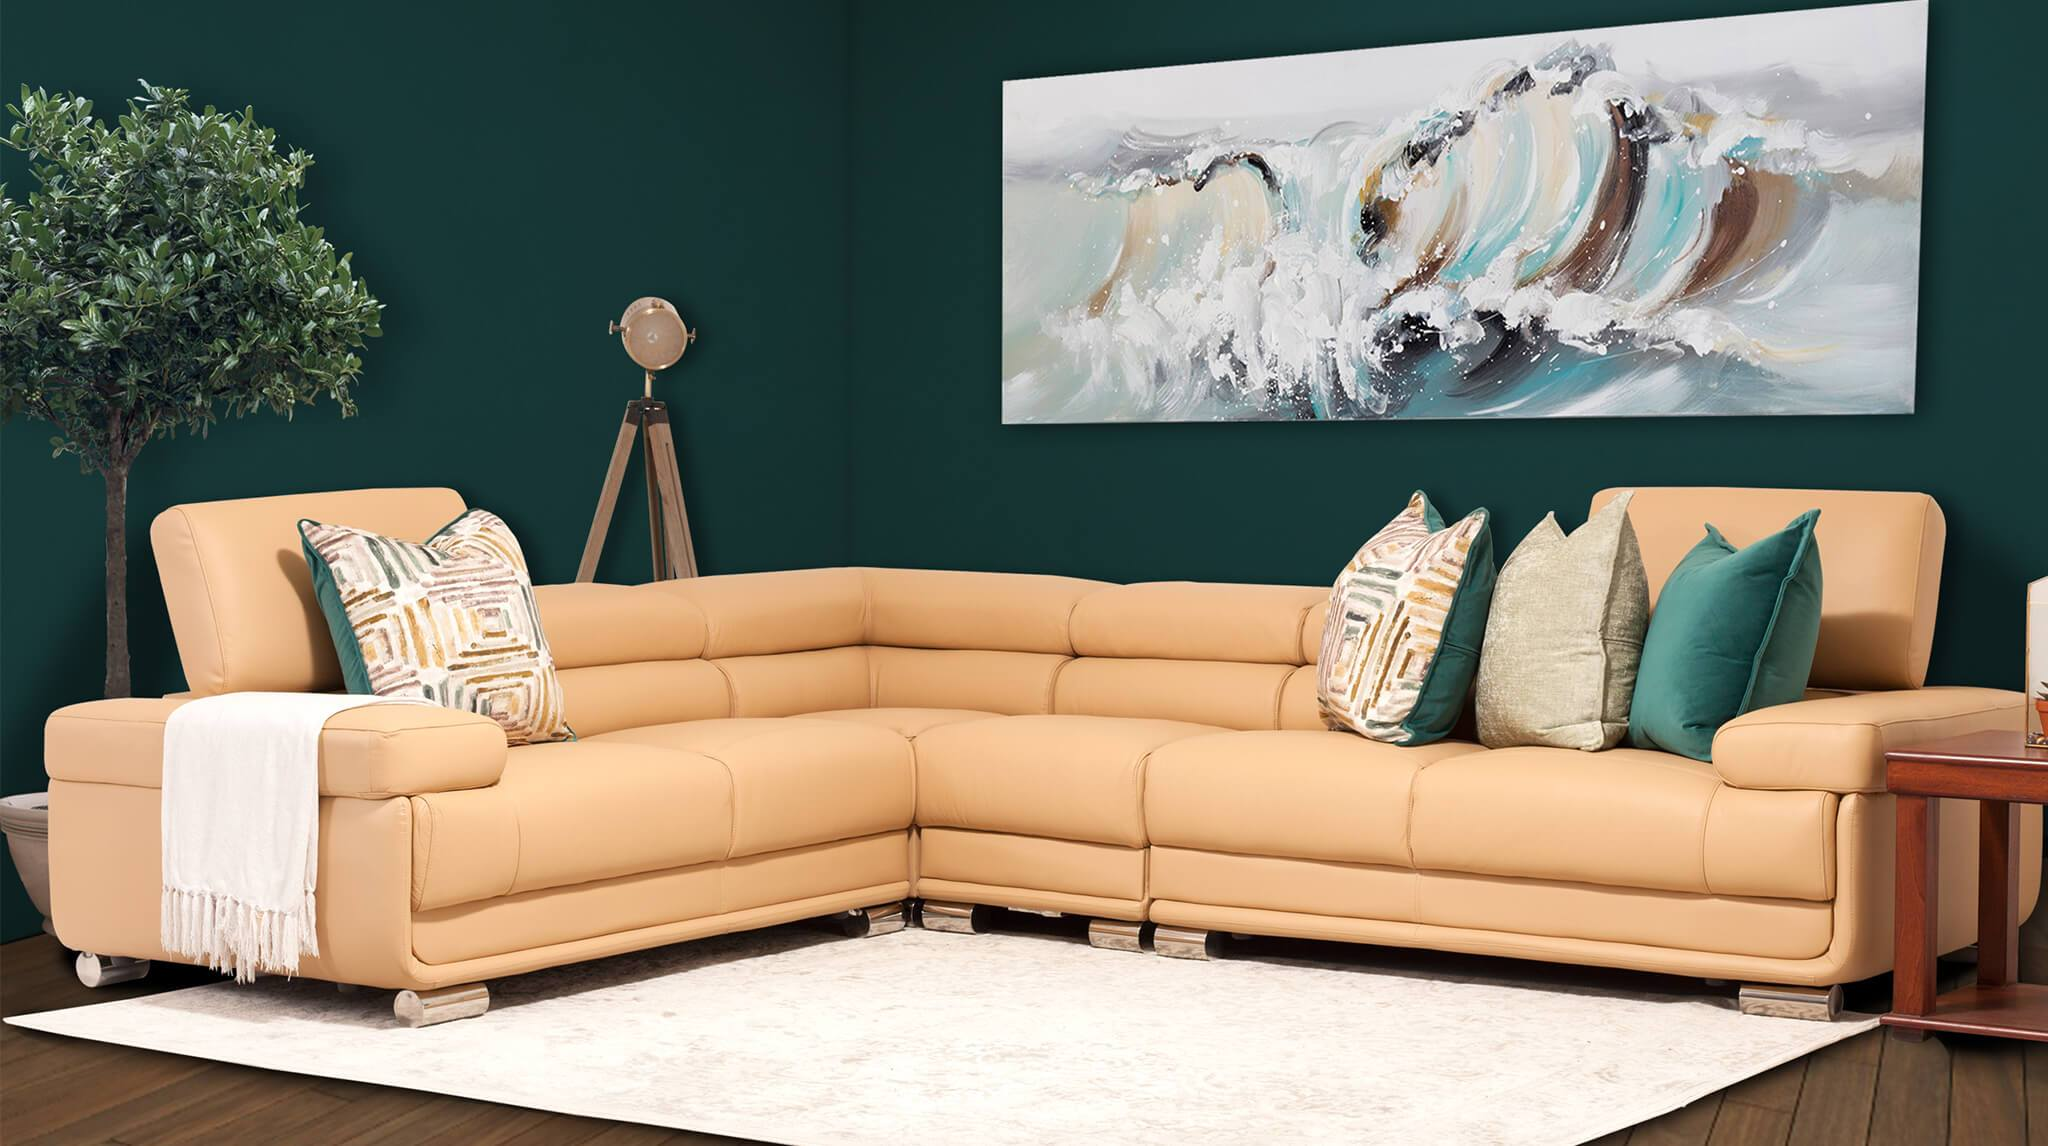 San Miguel Leather Corner Couch | Sectional | Buttercup-SM | Couches For Sale | Leather Gallery Couches